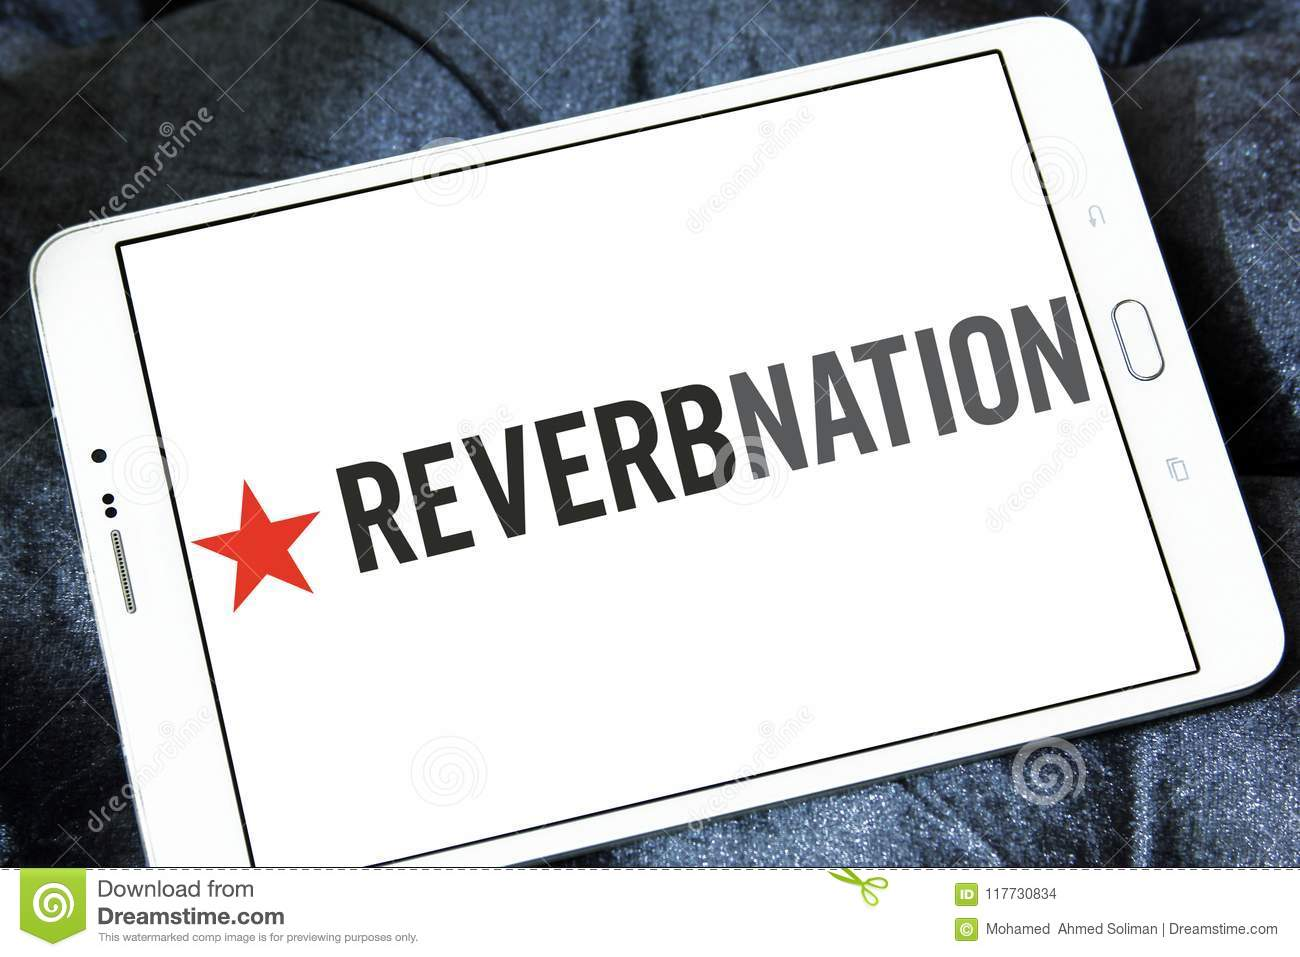 Reverbnation music platform logo editorial stock photo image of.